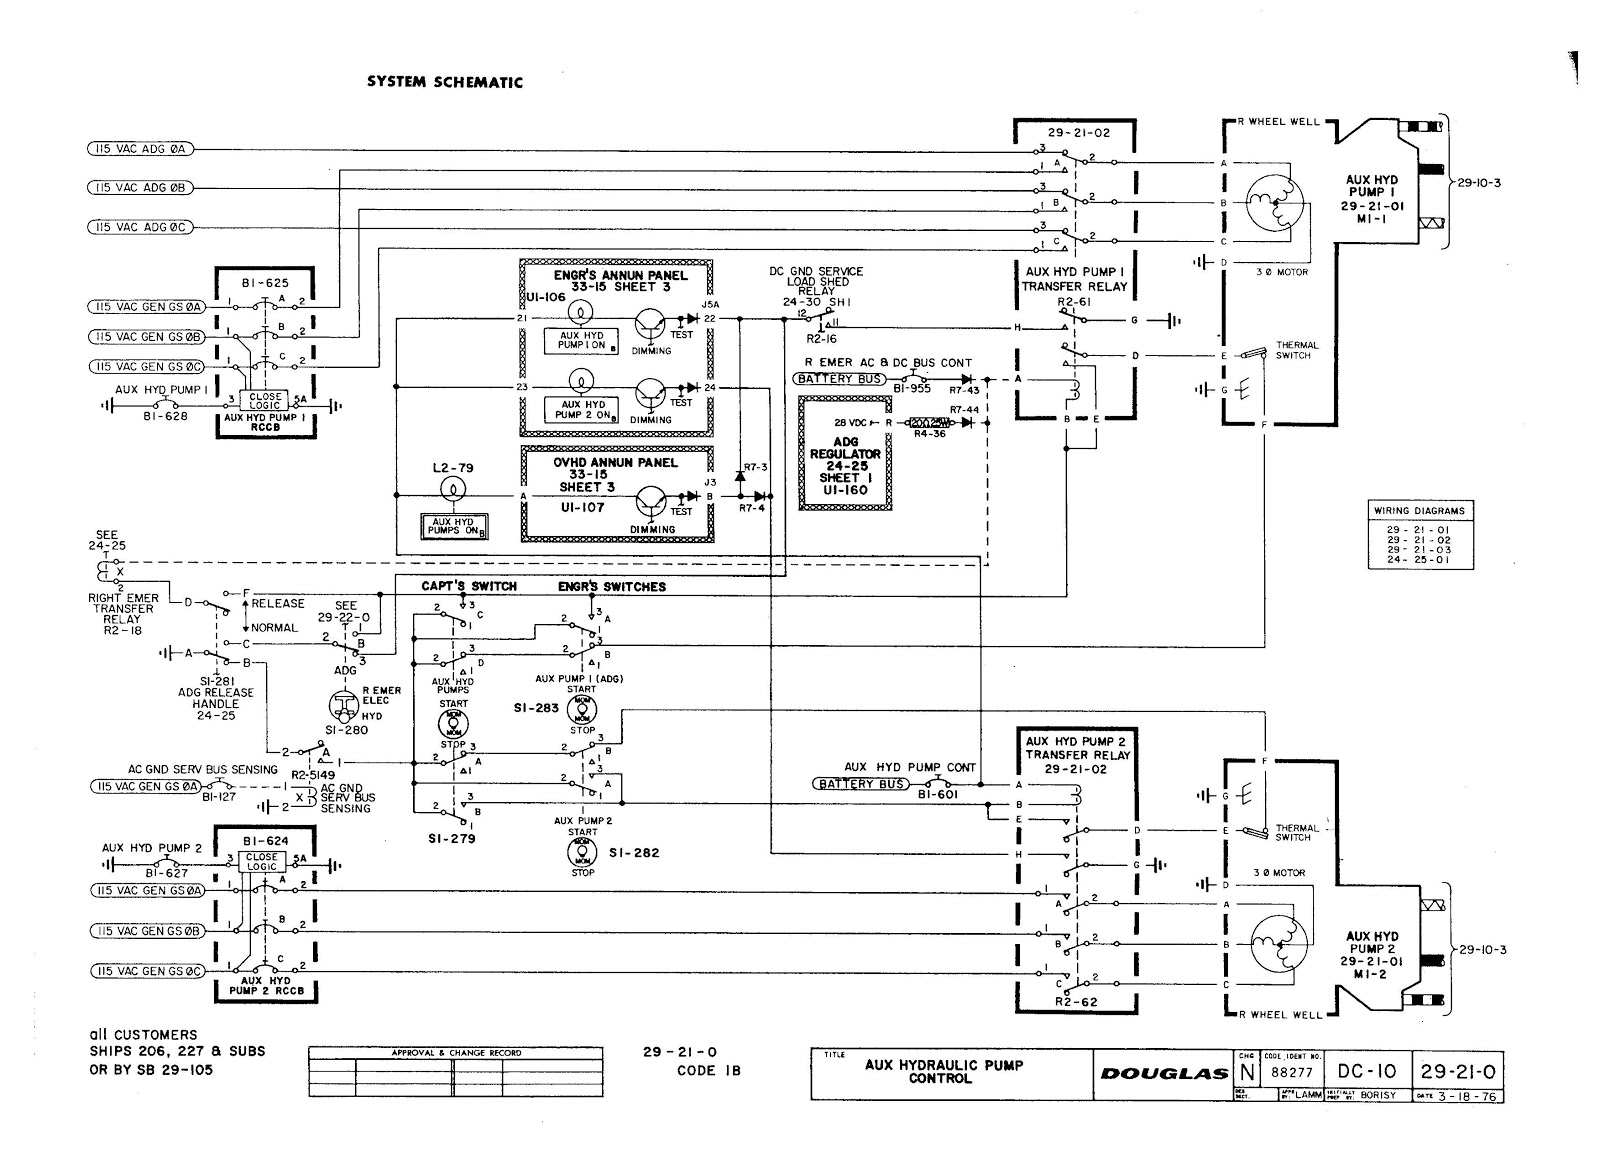 basic aircraft wiring diagram basic wiring diagrams online part 66 virtual aircraft wiring and schematic diagrams